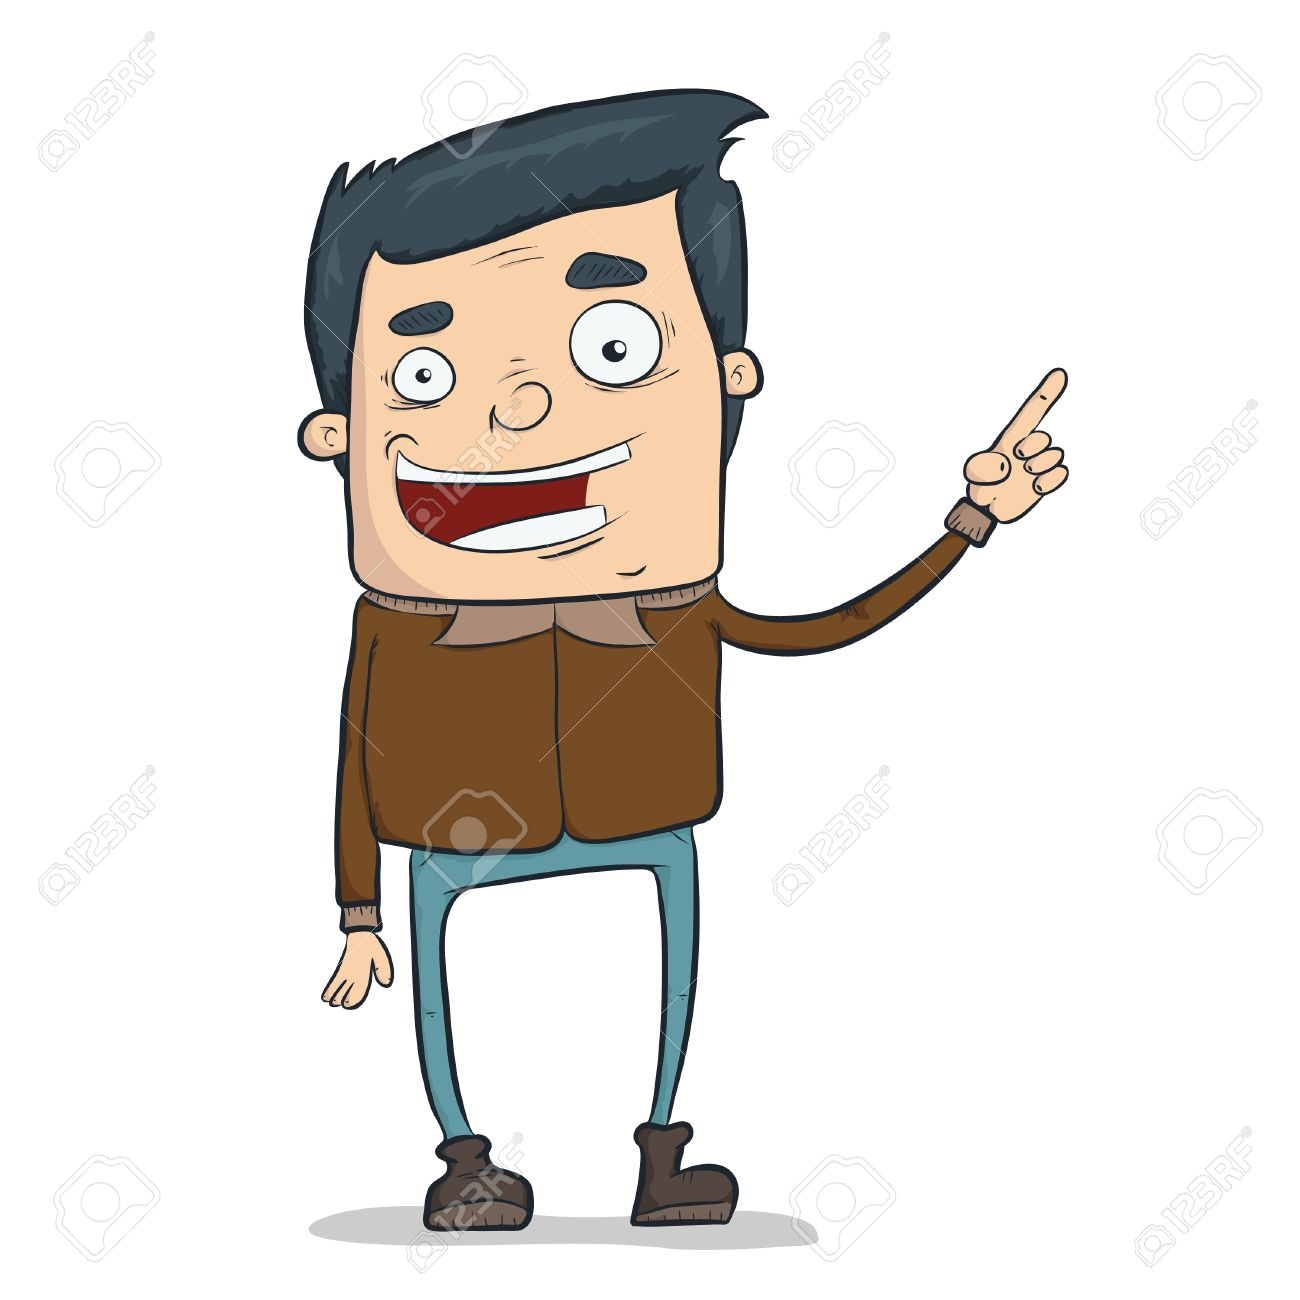 Illustration Of Funny Cartoon Character Doing Presentation Royalty Free Cliparts Vectors And Stock Illustration Image 7071750